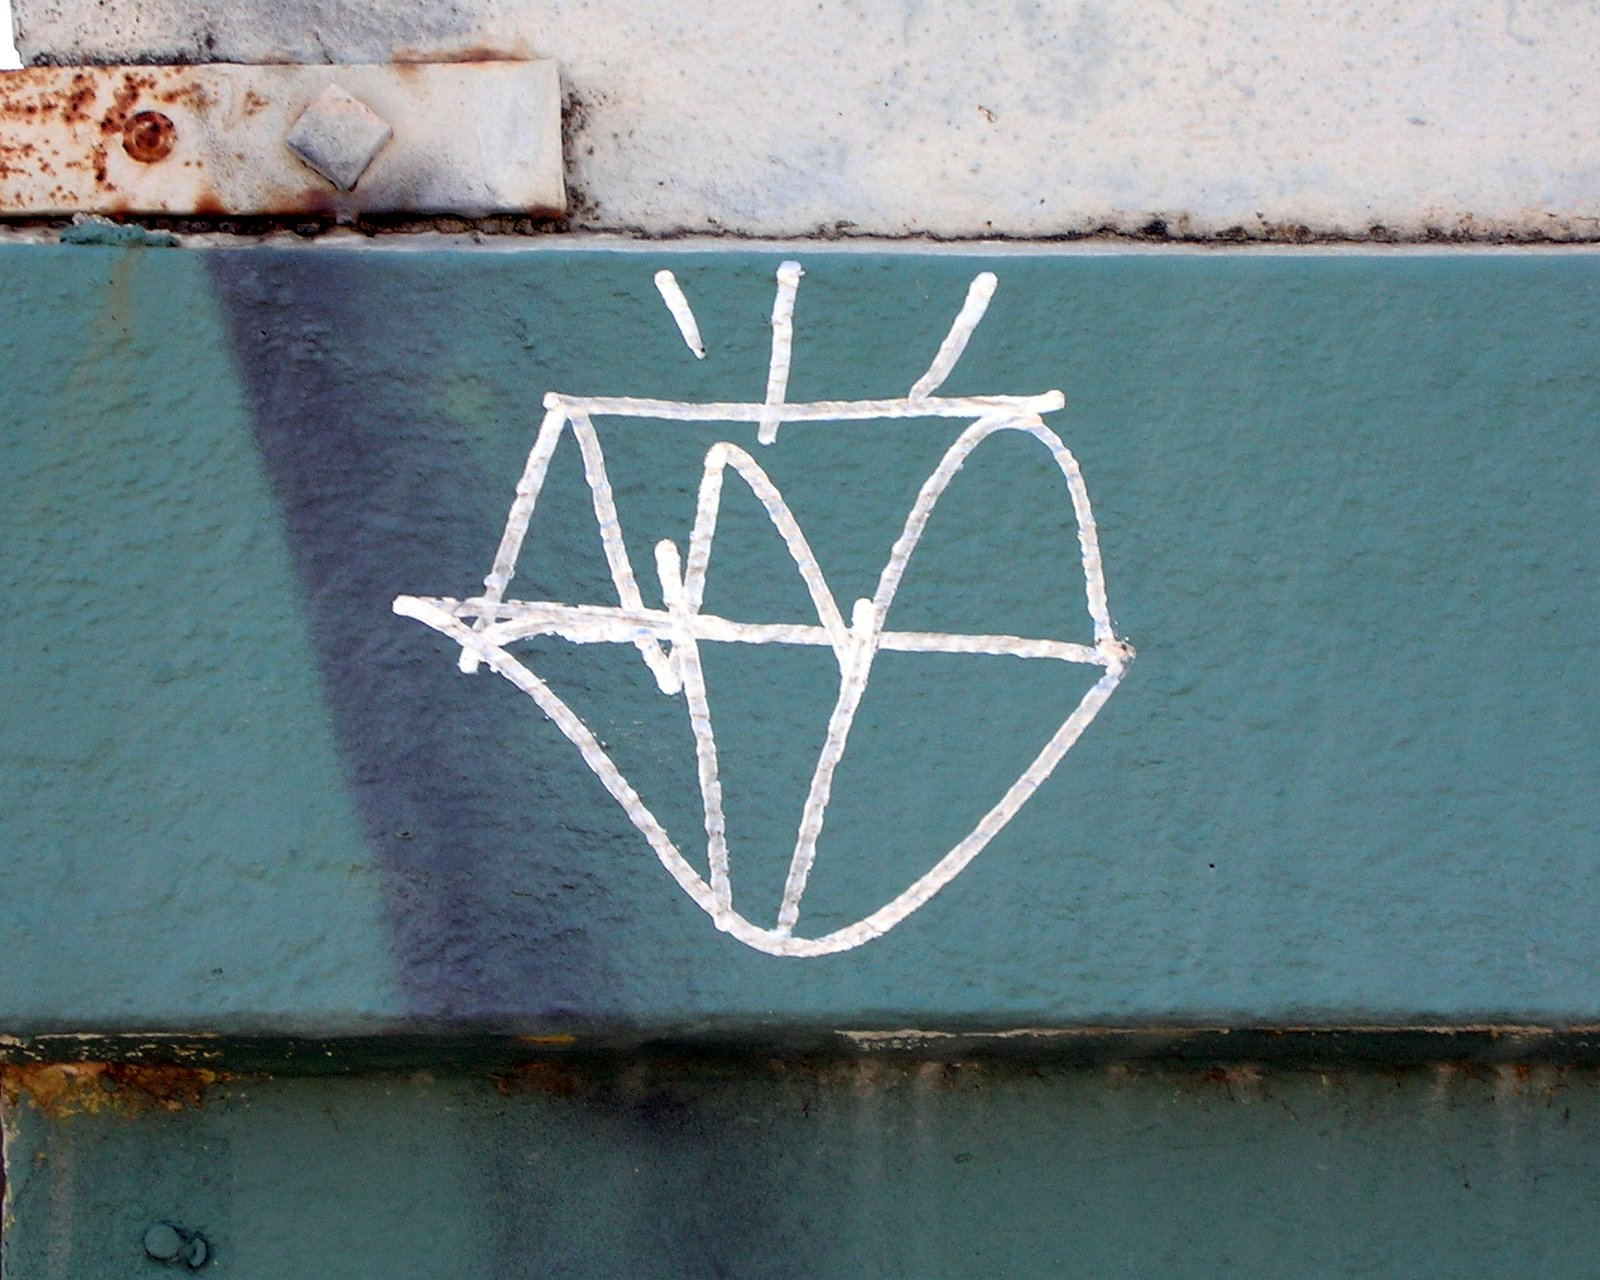 Graffitied diamond